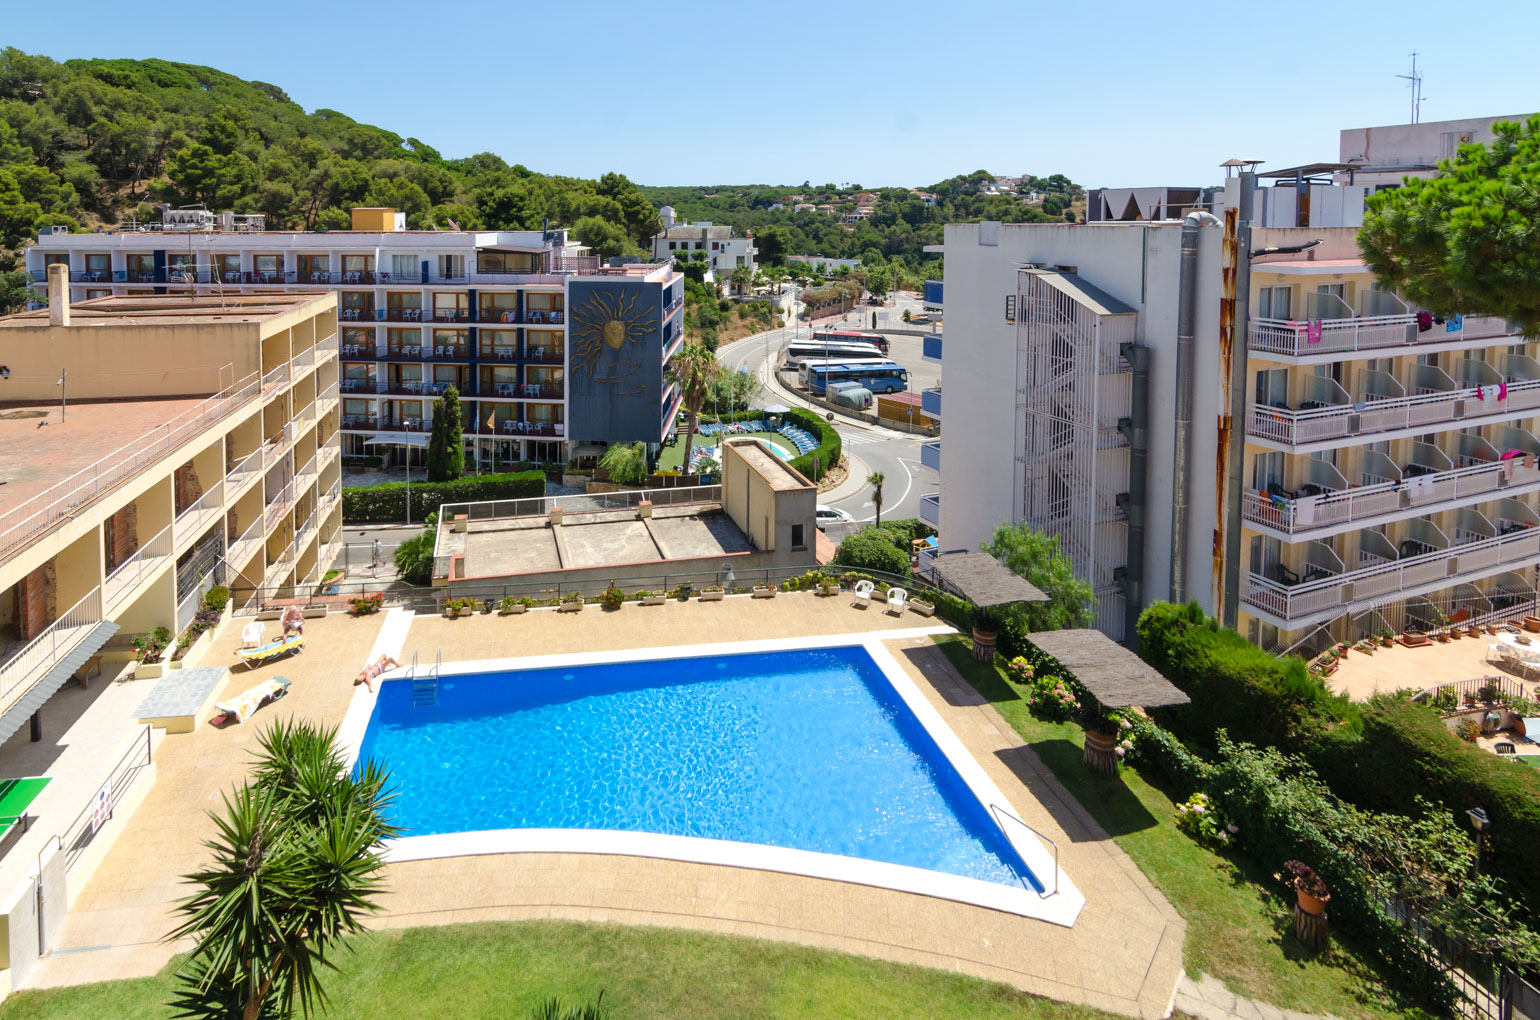 Villa Apartment Rielsa,Lloret de Mar,Costa Brava #2